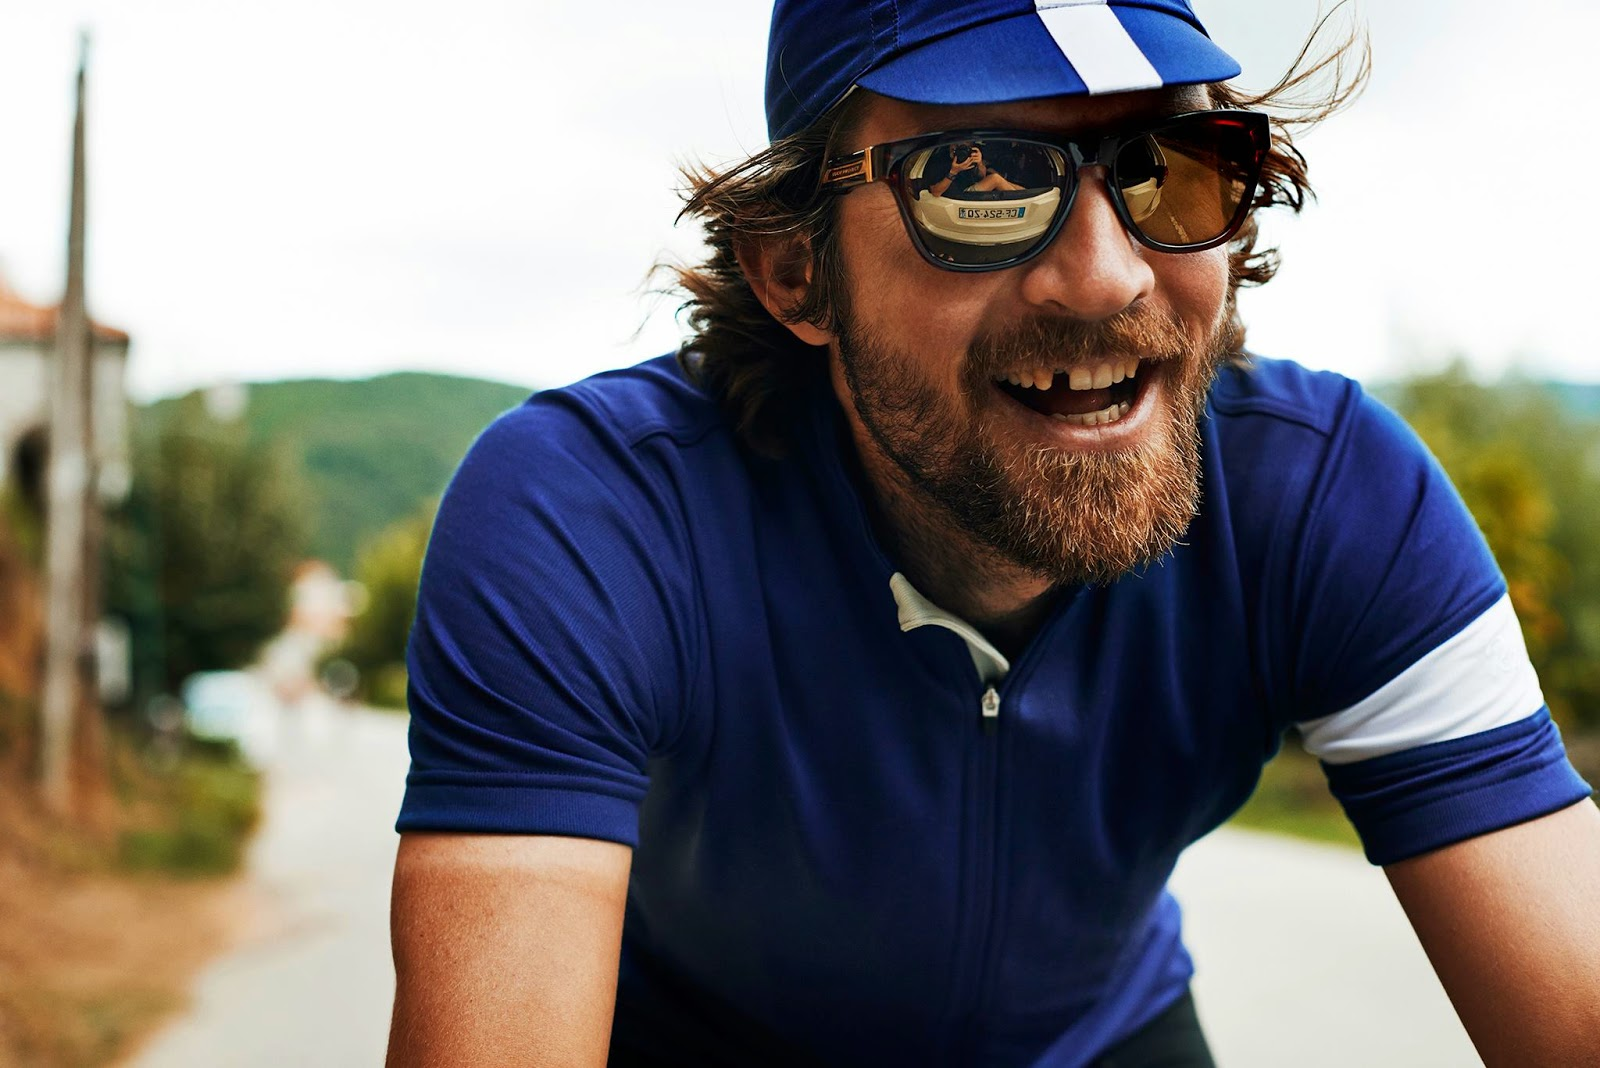 Photograph of a smiling cyclist, with one tooth missing.